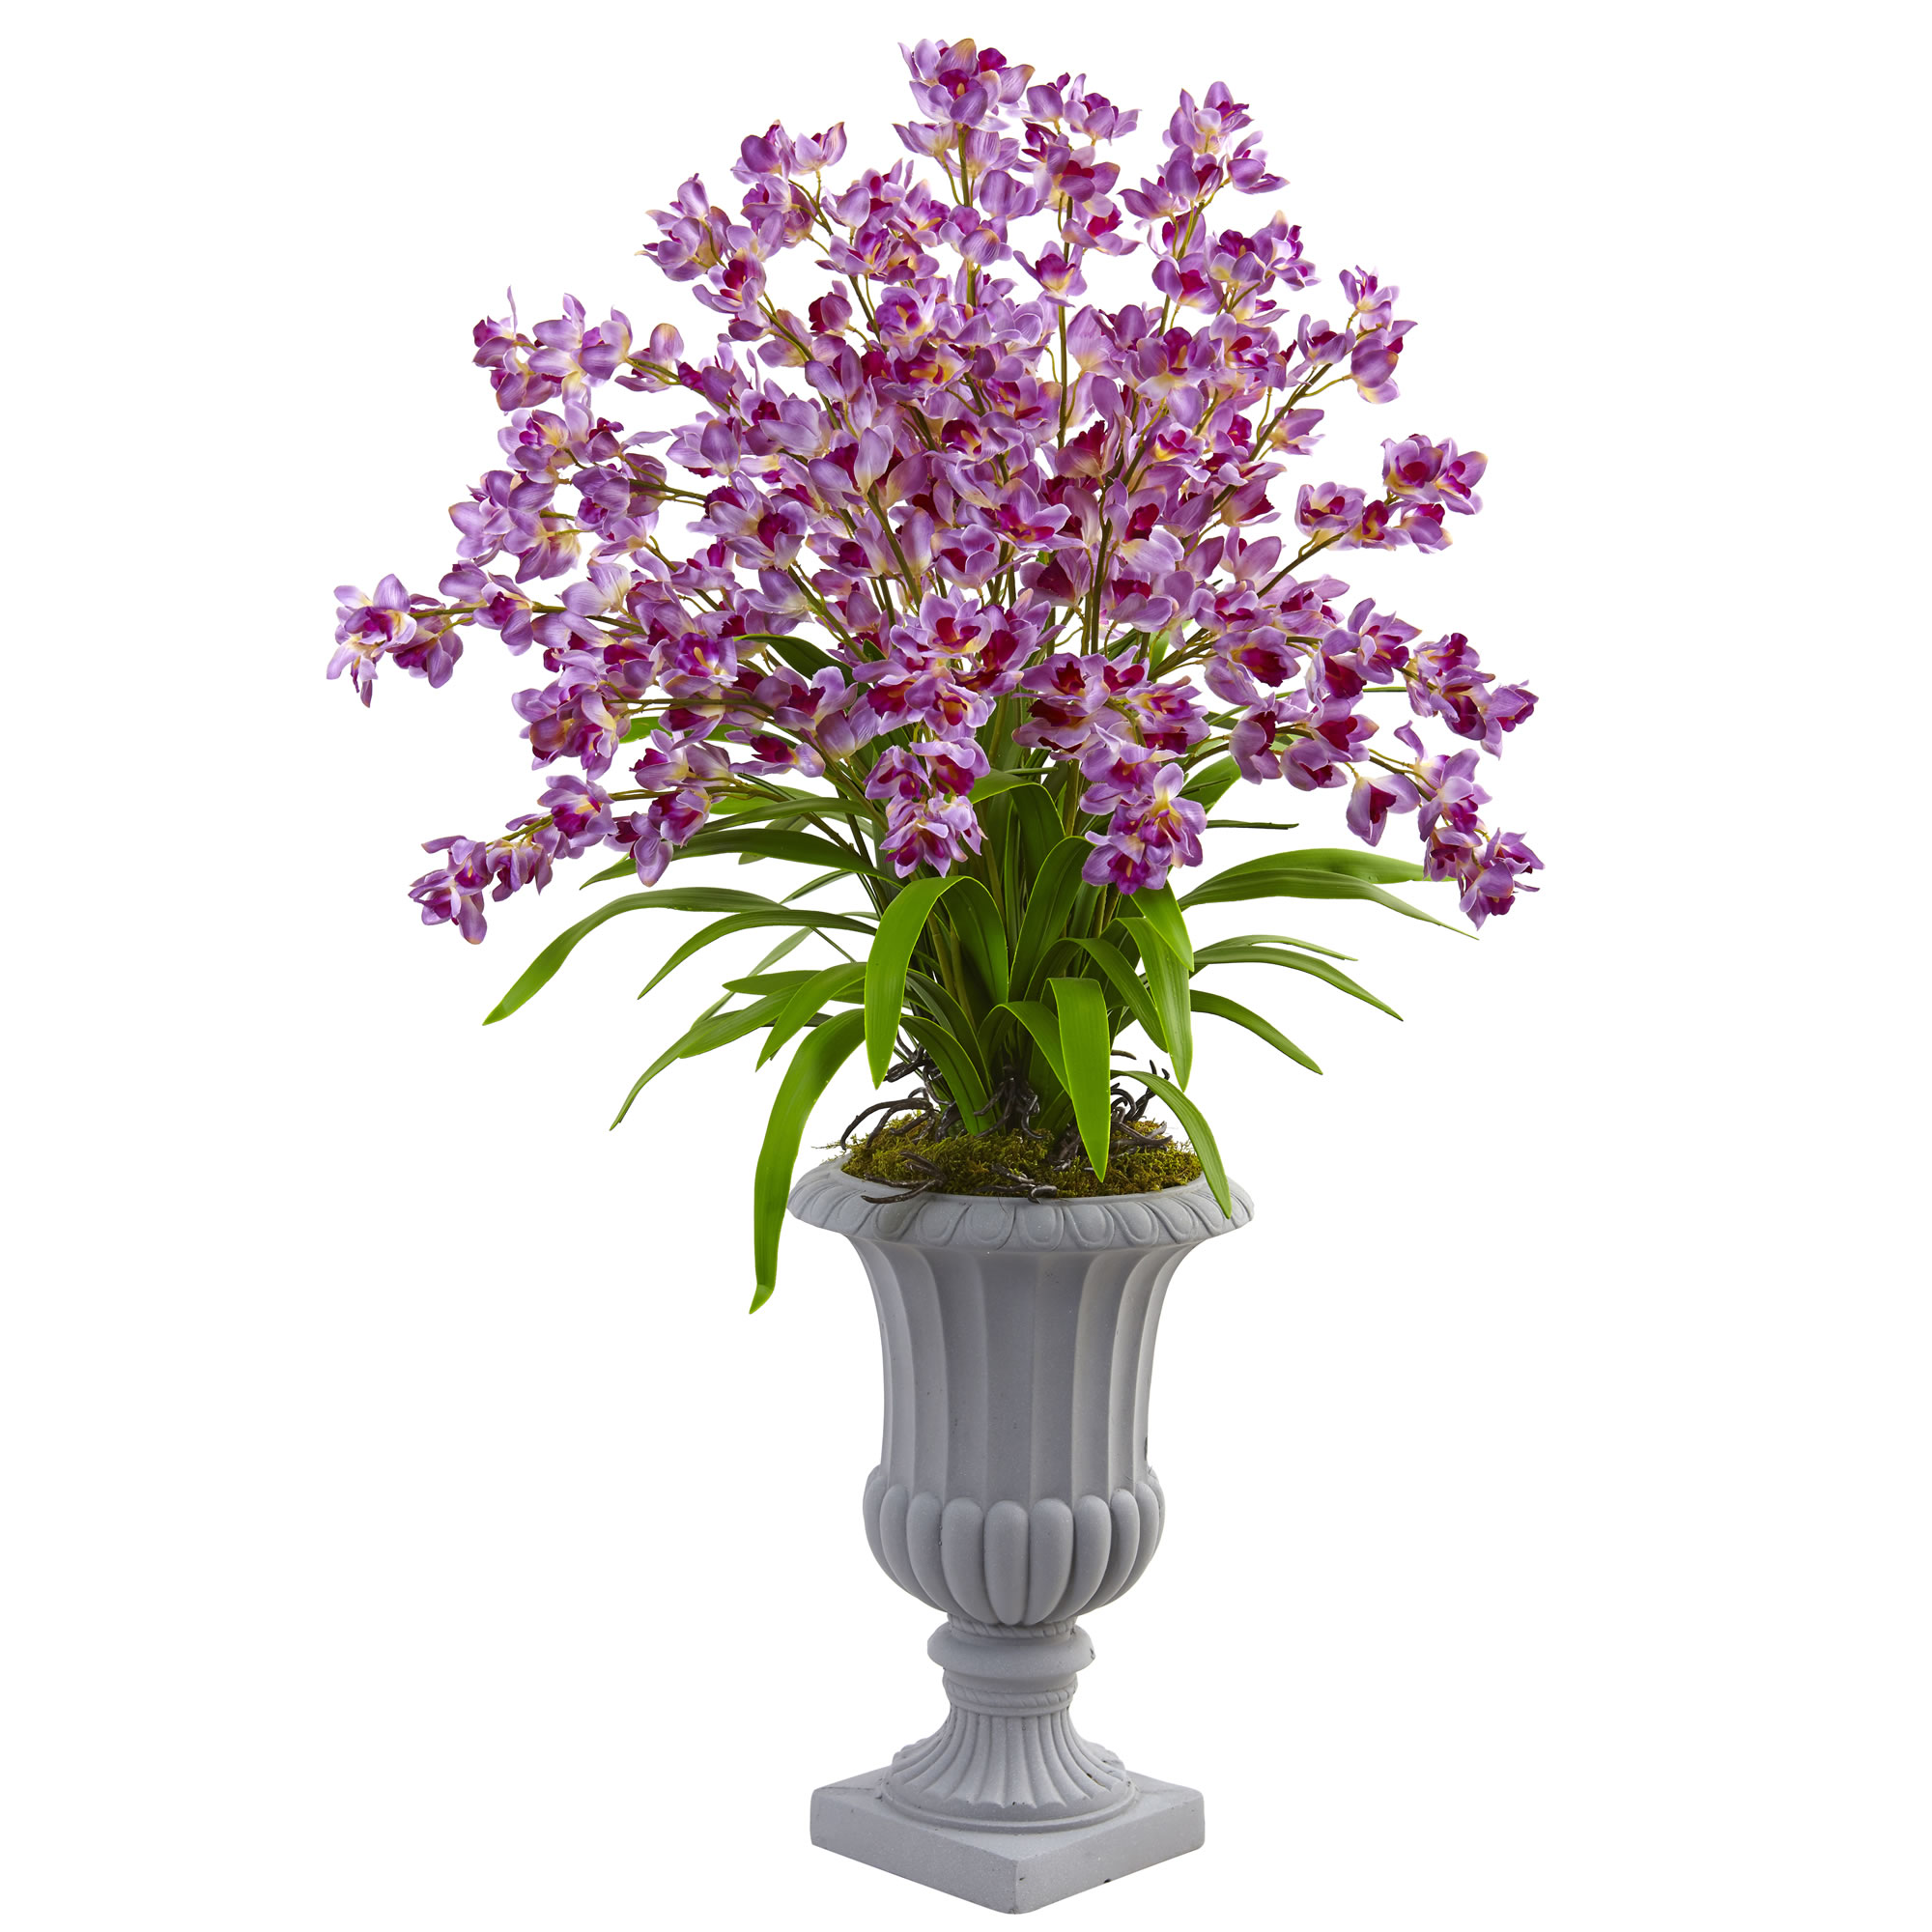 Reliable Purple-Giant-Blooming-Orchid-Arrangement-Urn Product Image 2476